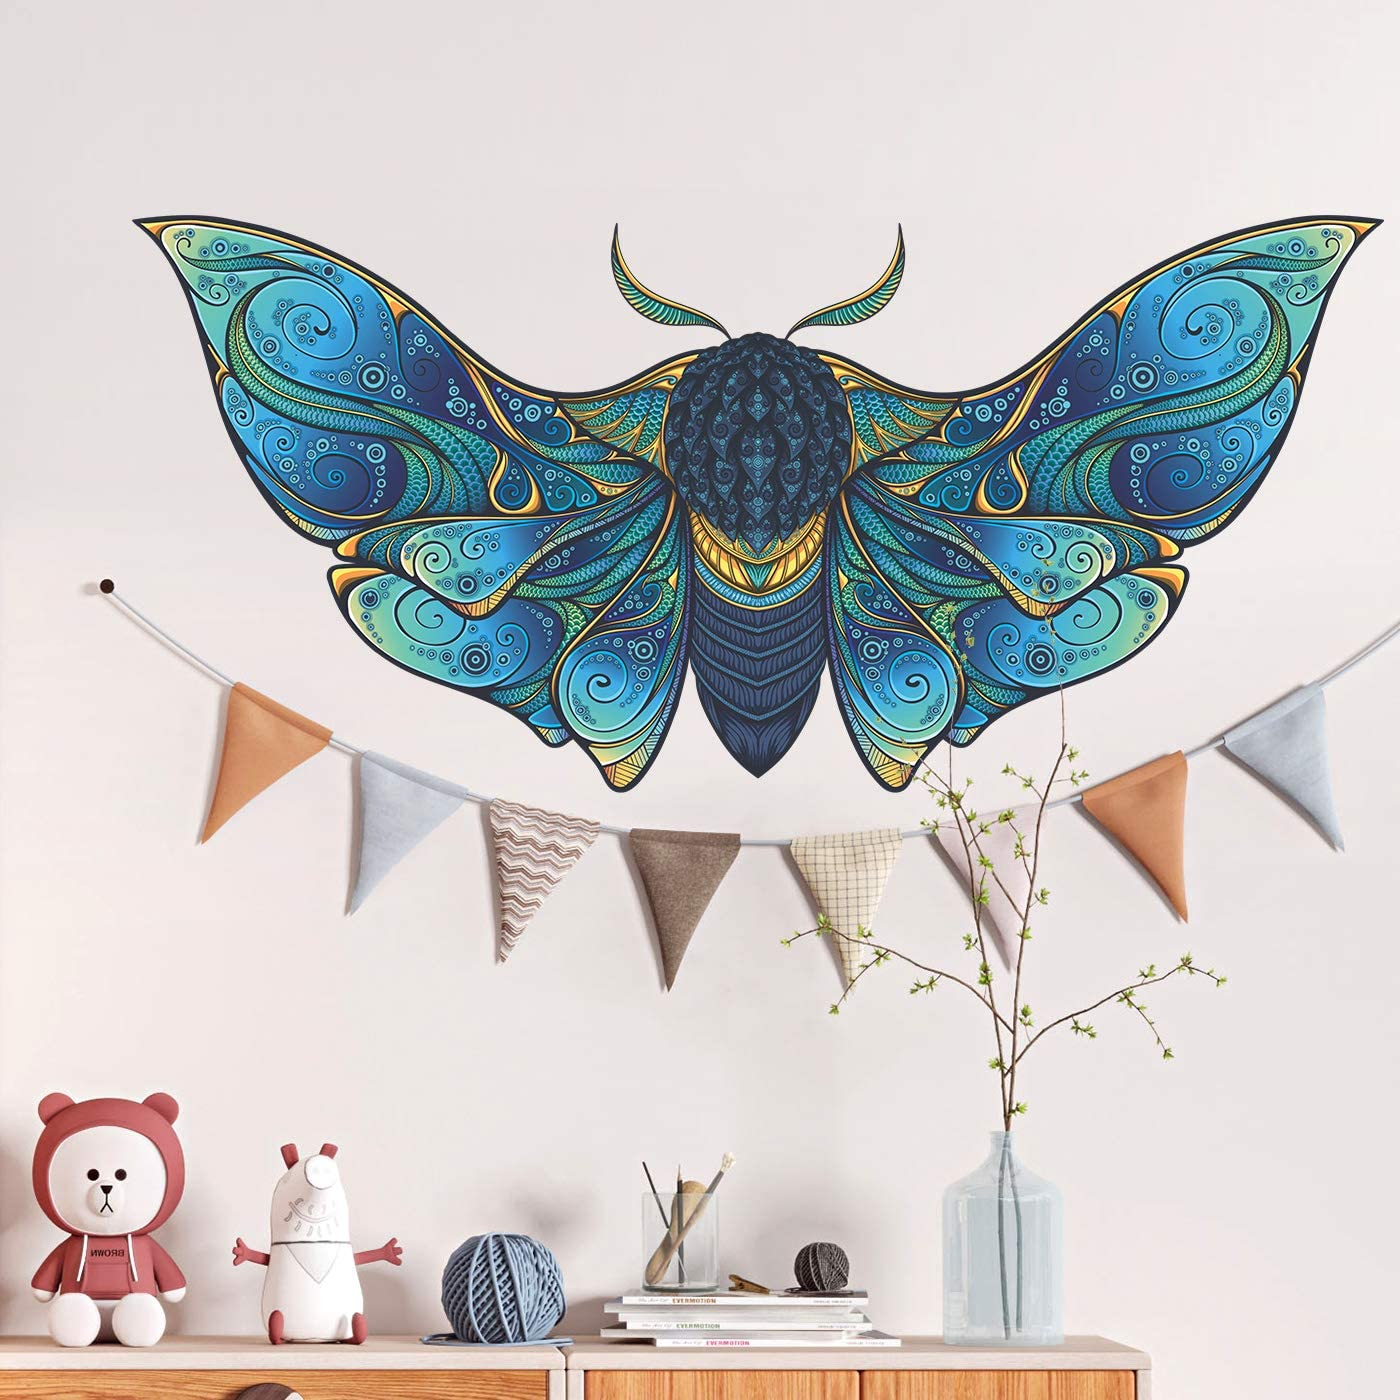 RW-B98 Big Moth Wall Decal Blue Moth Animals Wall Stickers DIY Removable 3D Butterfly Moth Wall Art Decor for Kids Boys Girls Bedroom Living Room Nursery Office Classroom Decoration